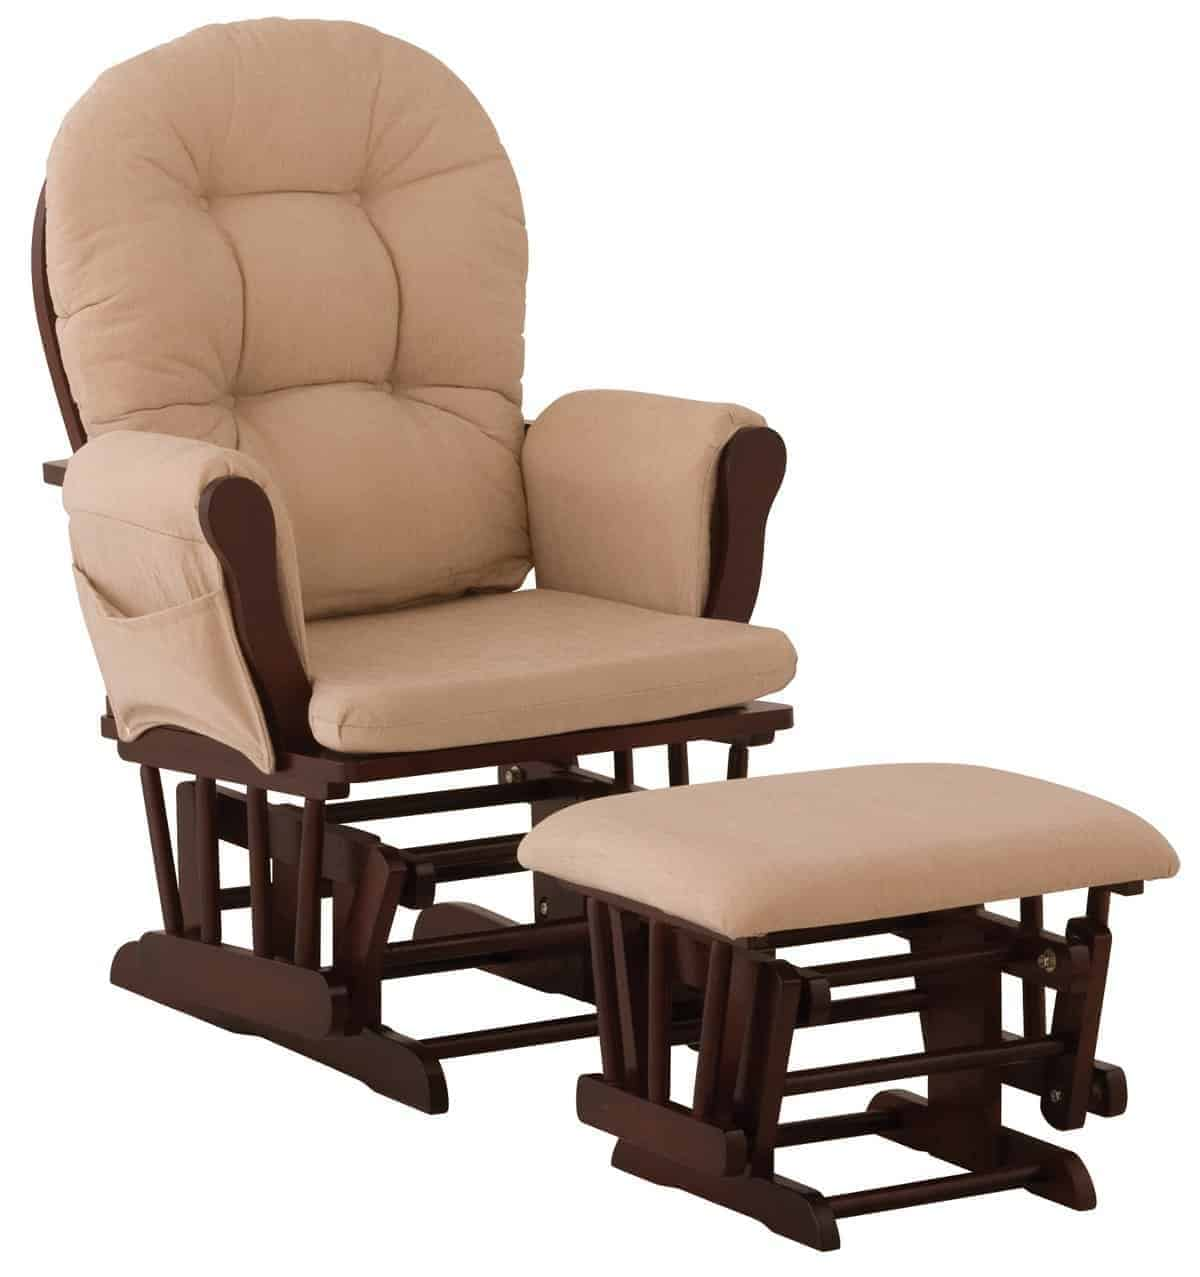 Stork Craft Hoop Glider and Ottoman Set Best Rocking Chairs for Your Nursery